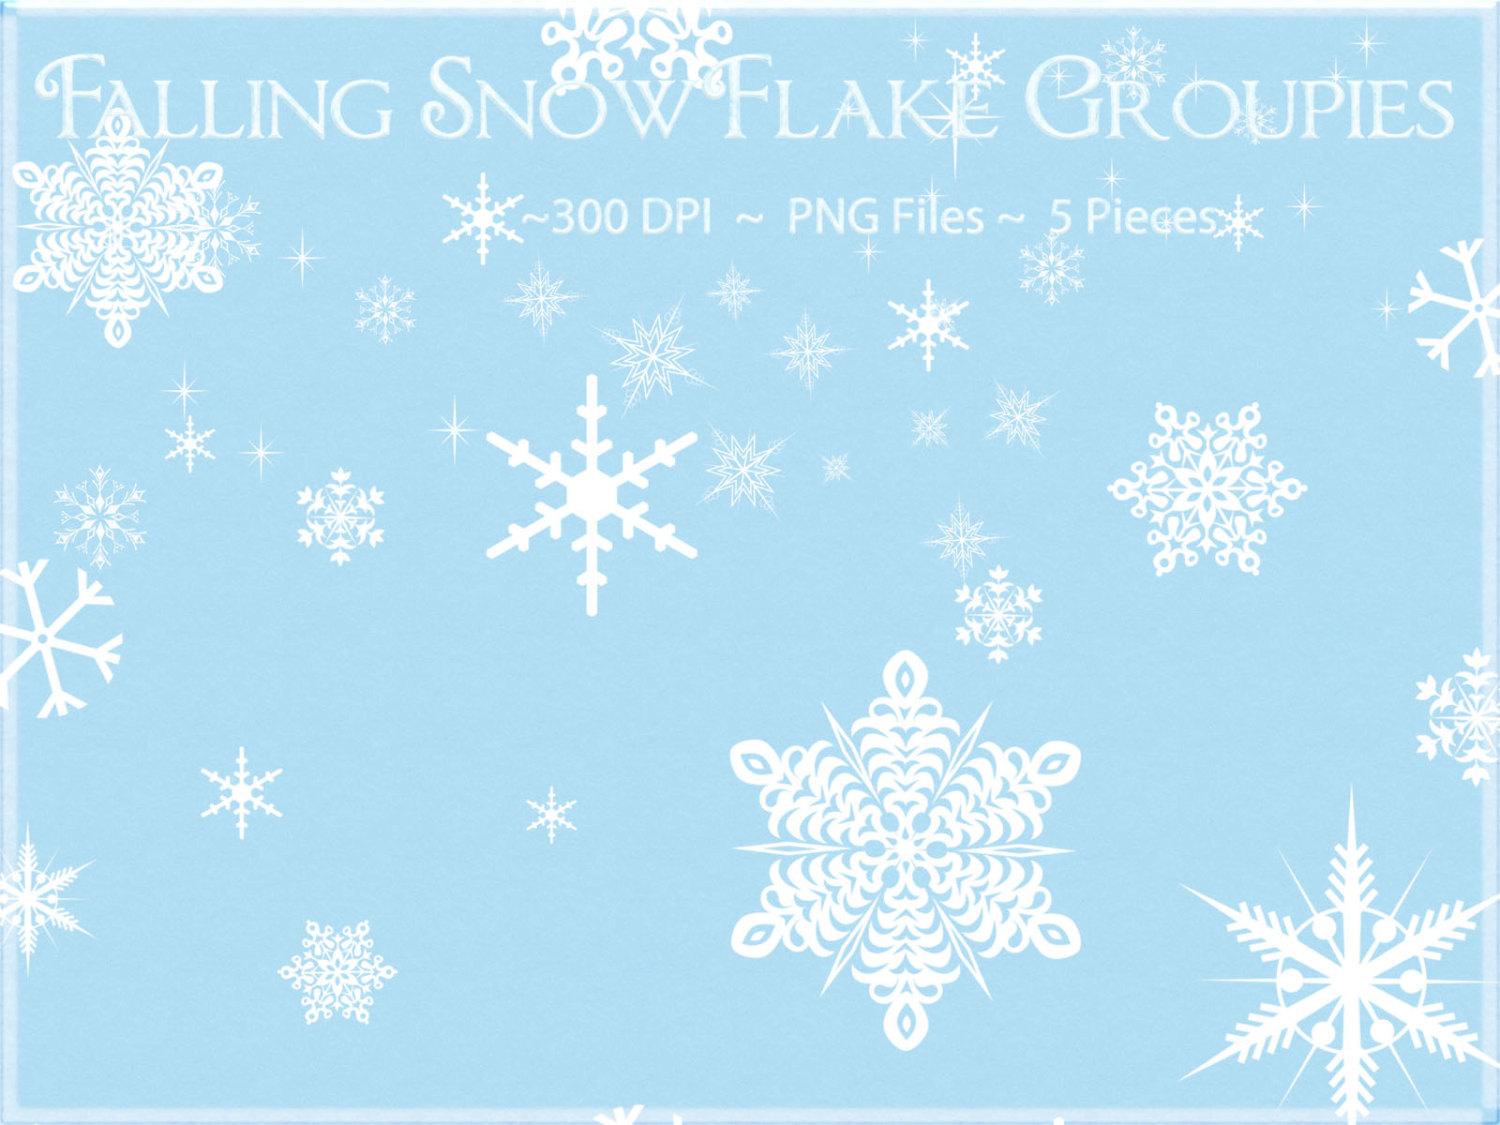 Snowflake Clipart, Falling Snowflake Clipart, Winter Clipart, Snow Clipart,  Snowflake